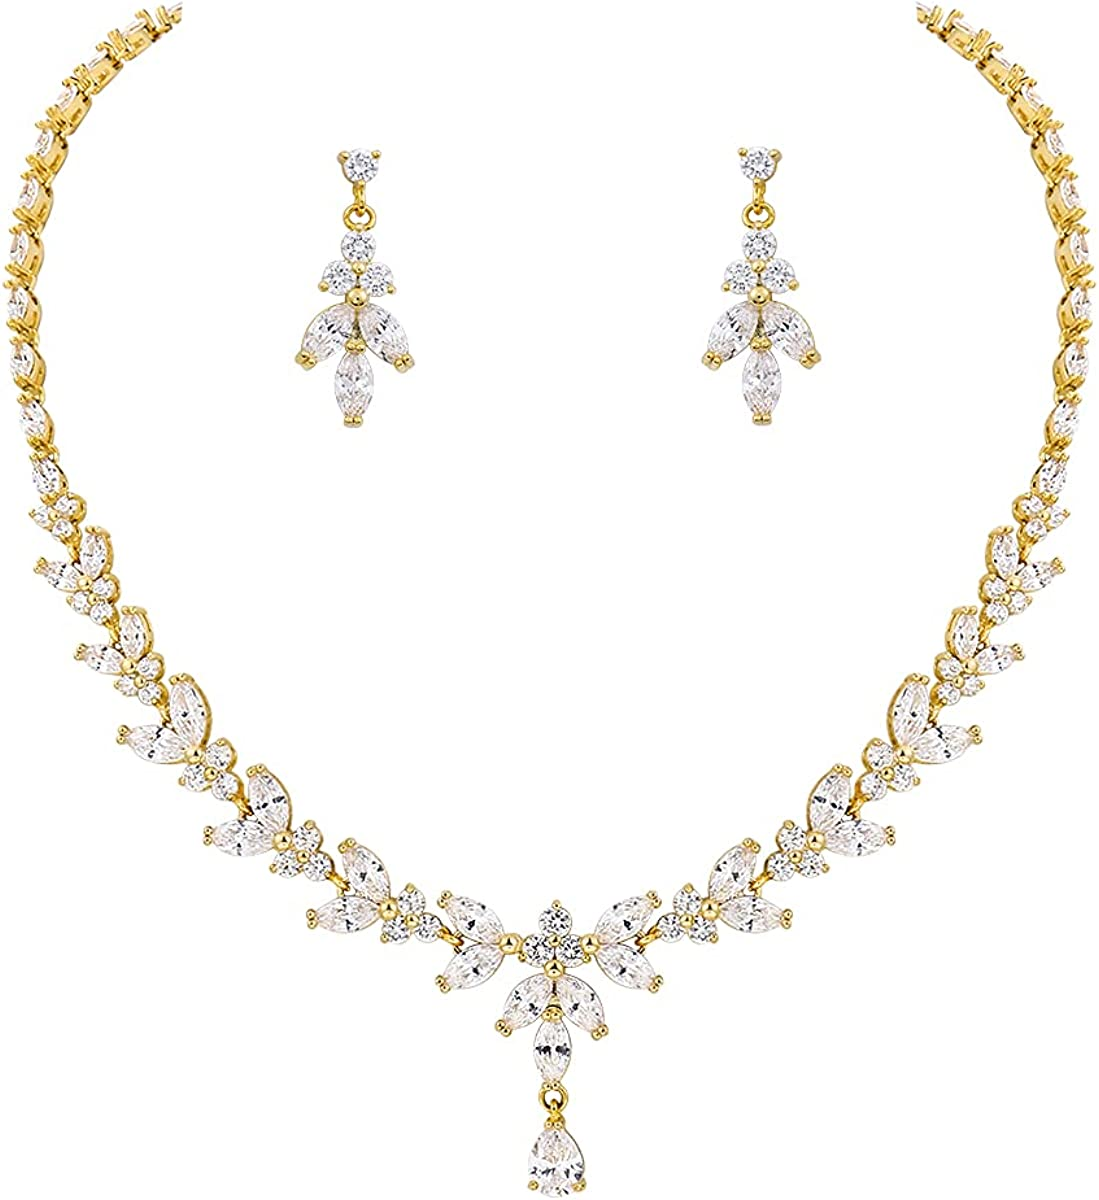 MEEDOZ Bridal Wedding Jewelry CZ Set Marquise Pear-Shaped Teardrop Cubic Zirconia Adjustable Pendant Necklace and Dangle Earring Sets for Women Girls